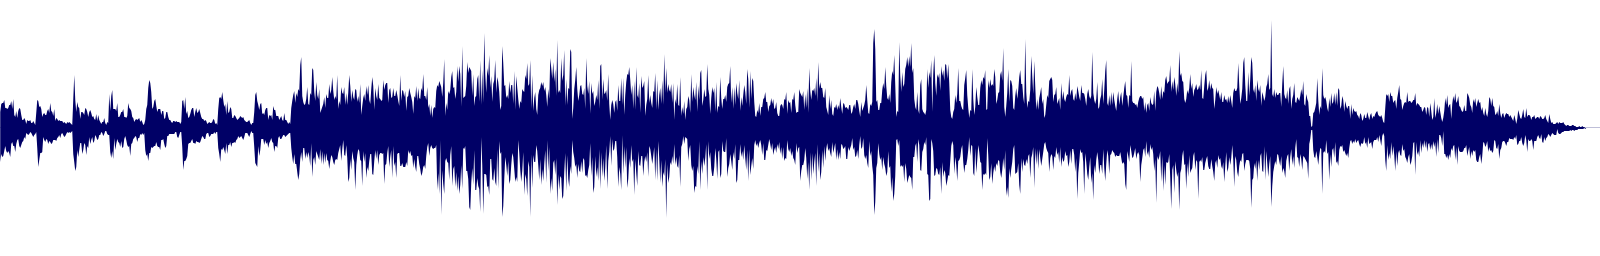 waveform of track #129064